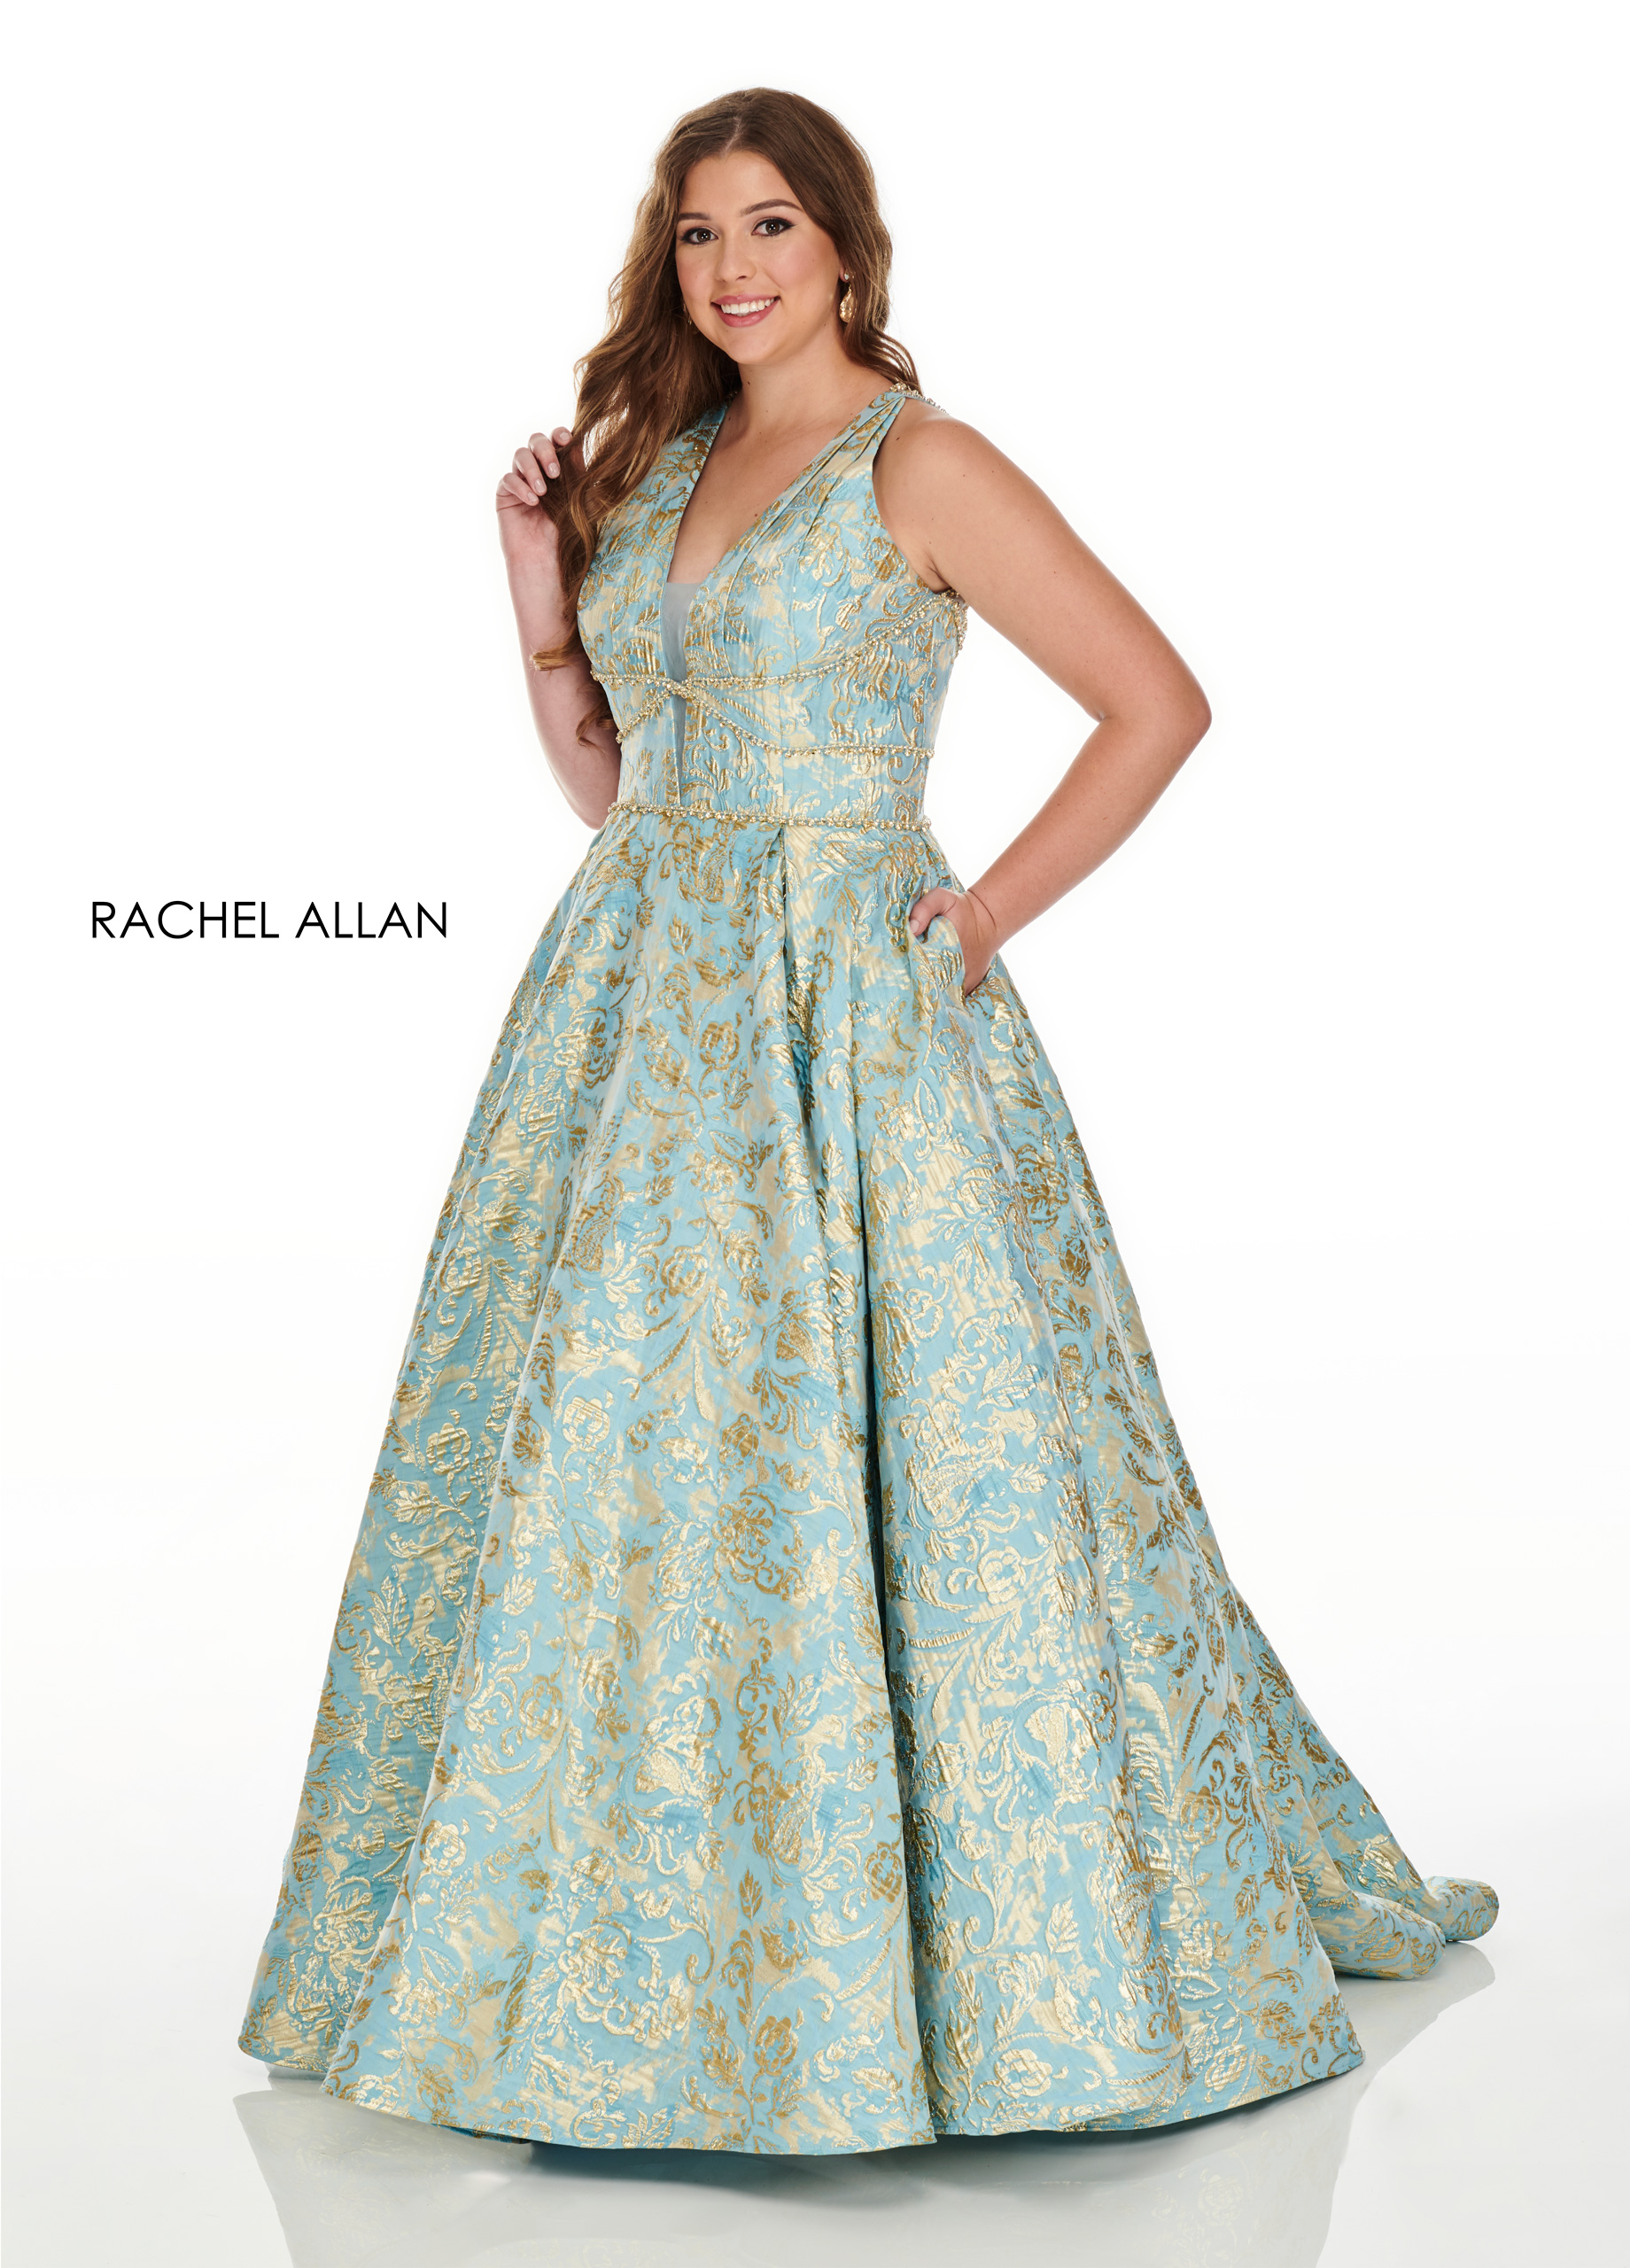 V-Neck Ball Gowns Plus Size Dresses in Aqua Color